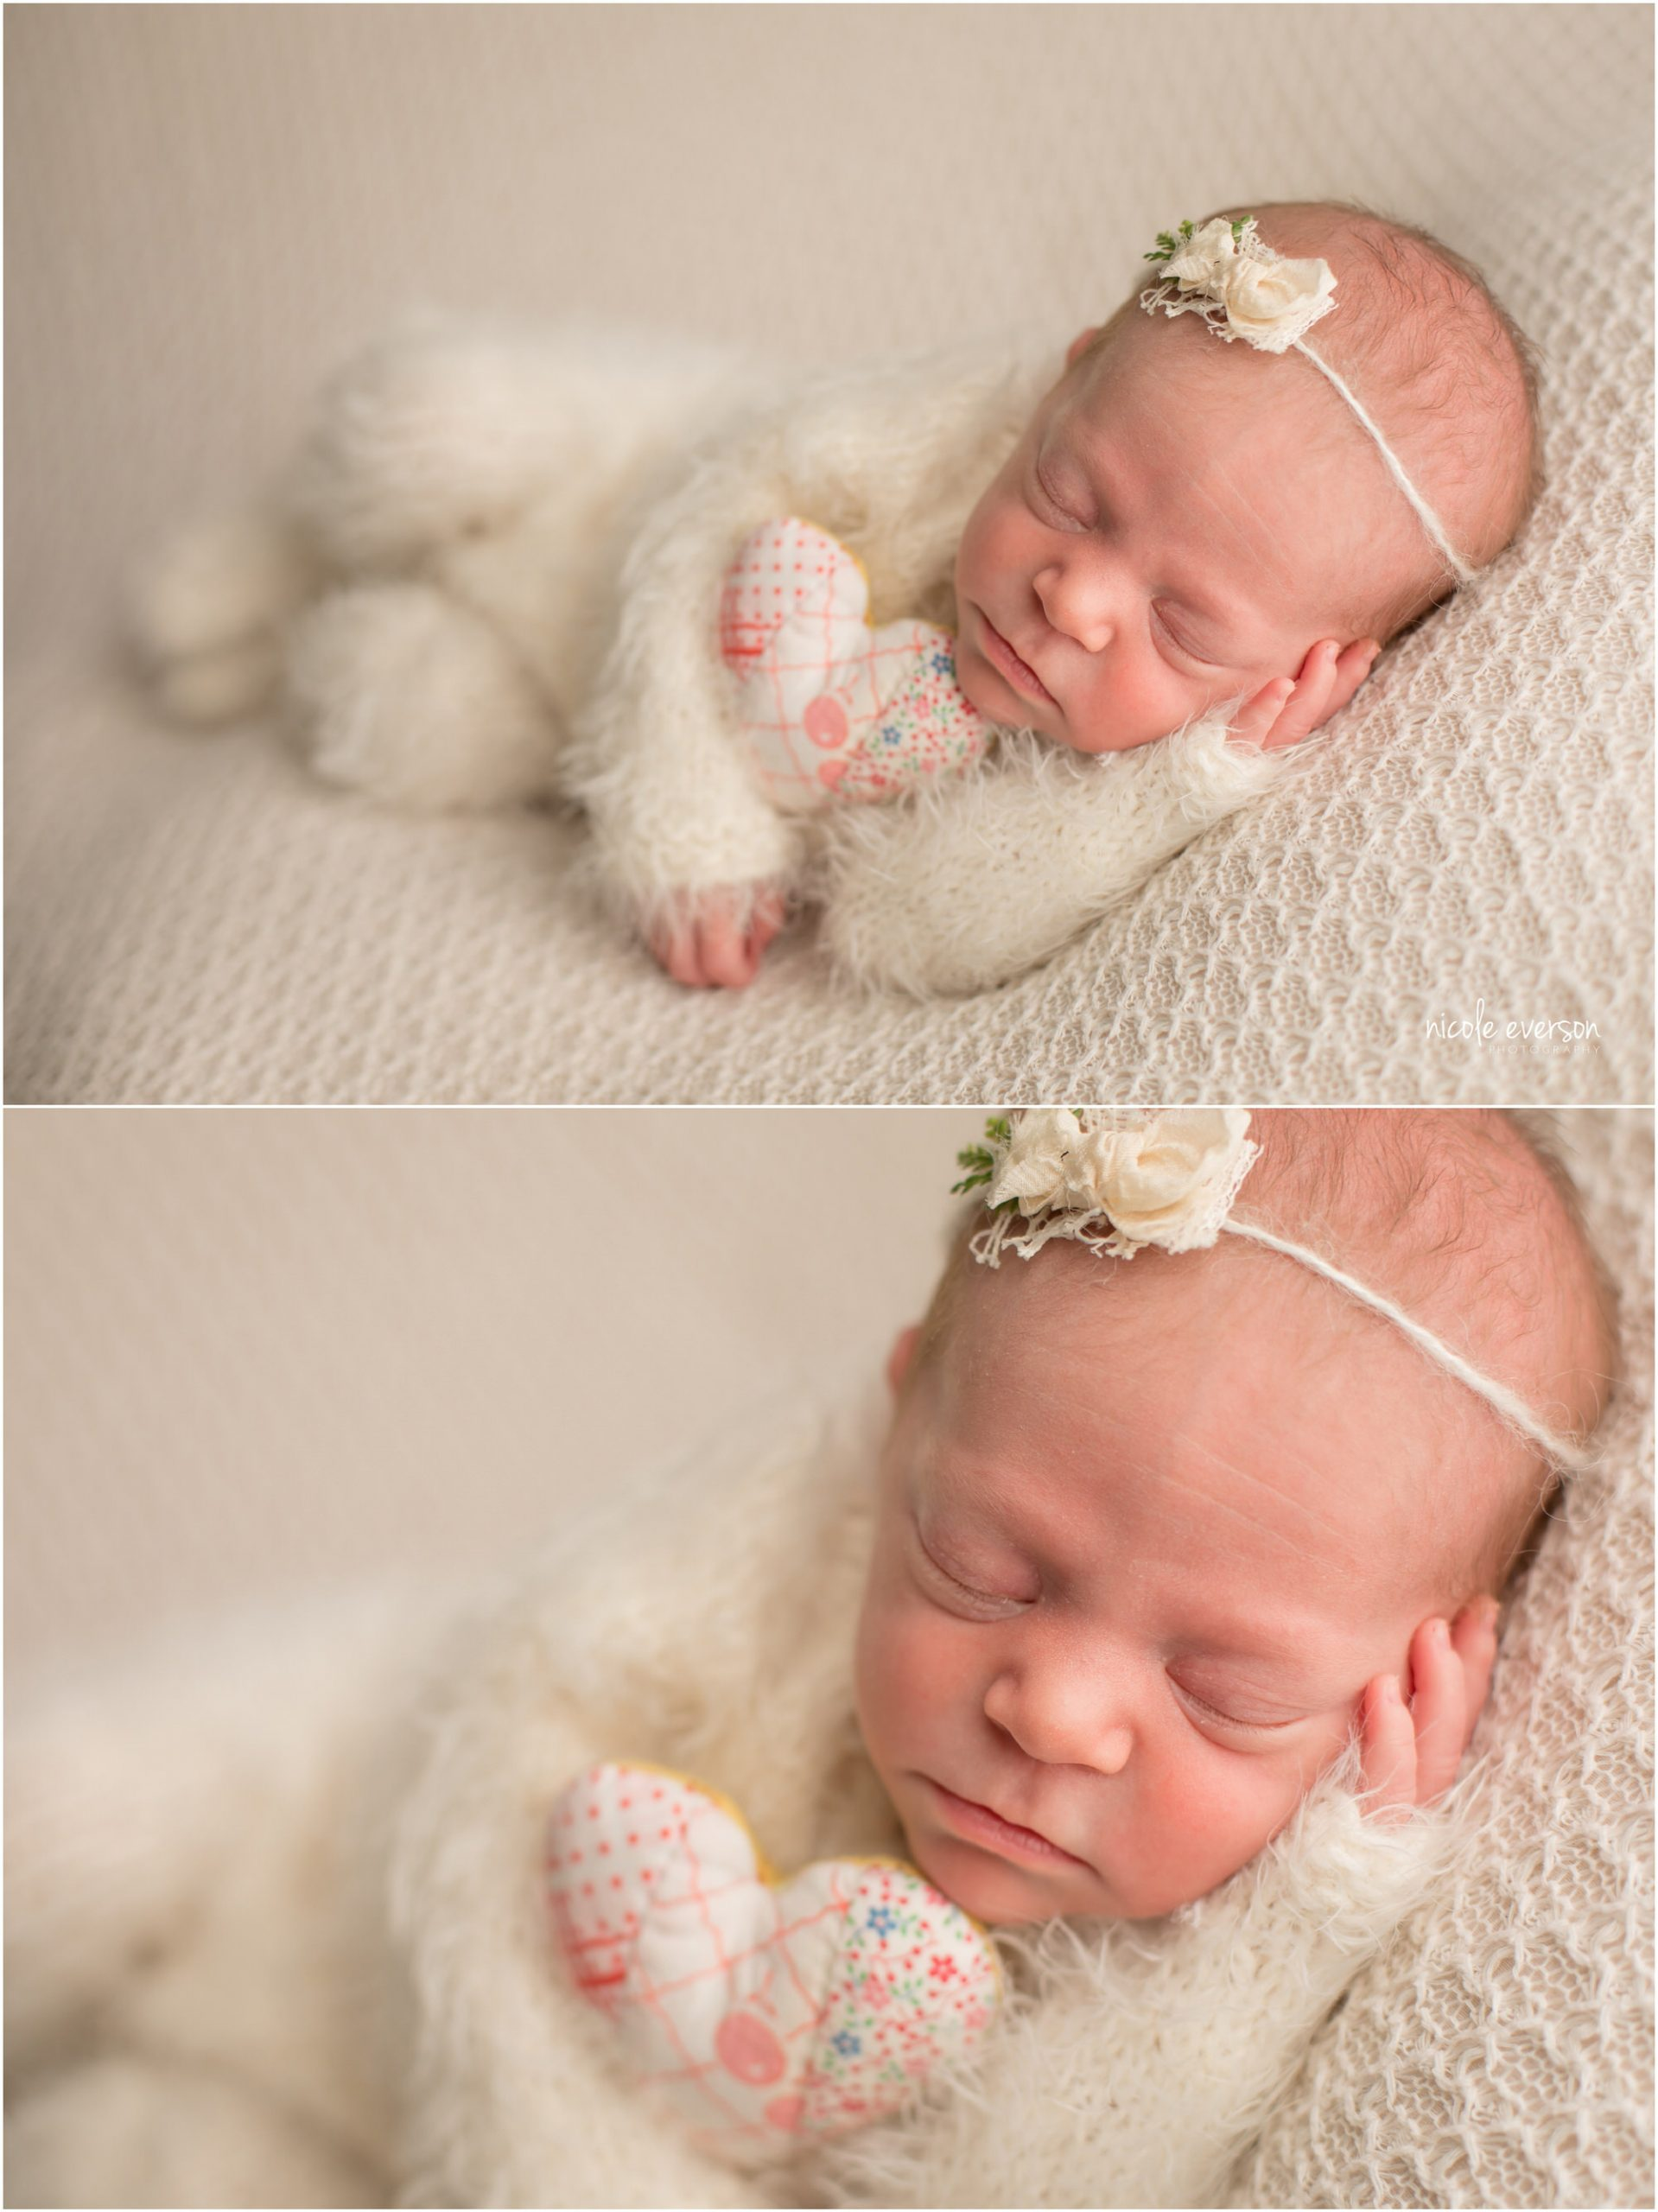 Newborn baby girl in a fuzzy white outfit, laying on a soft white backdrop photographed at Nicole Everson Photography.